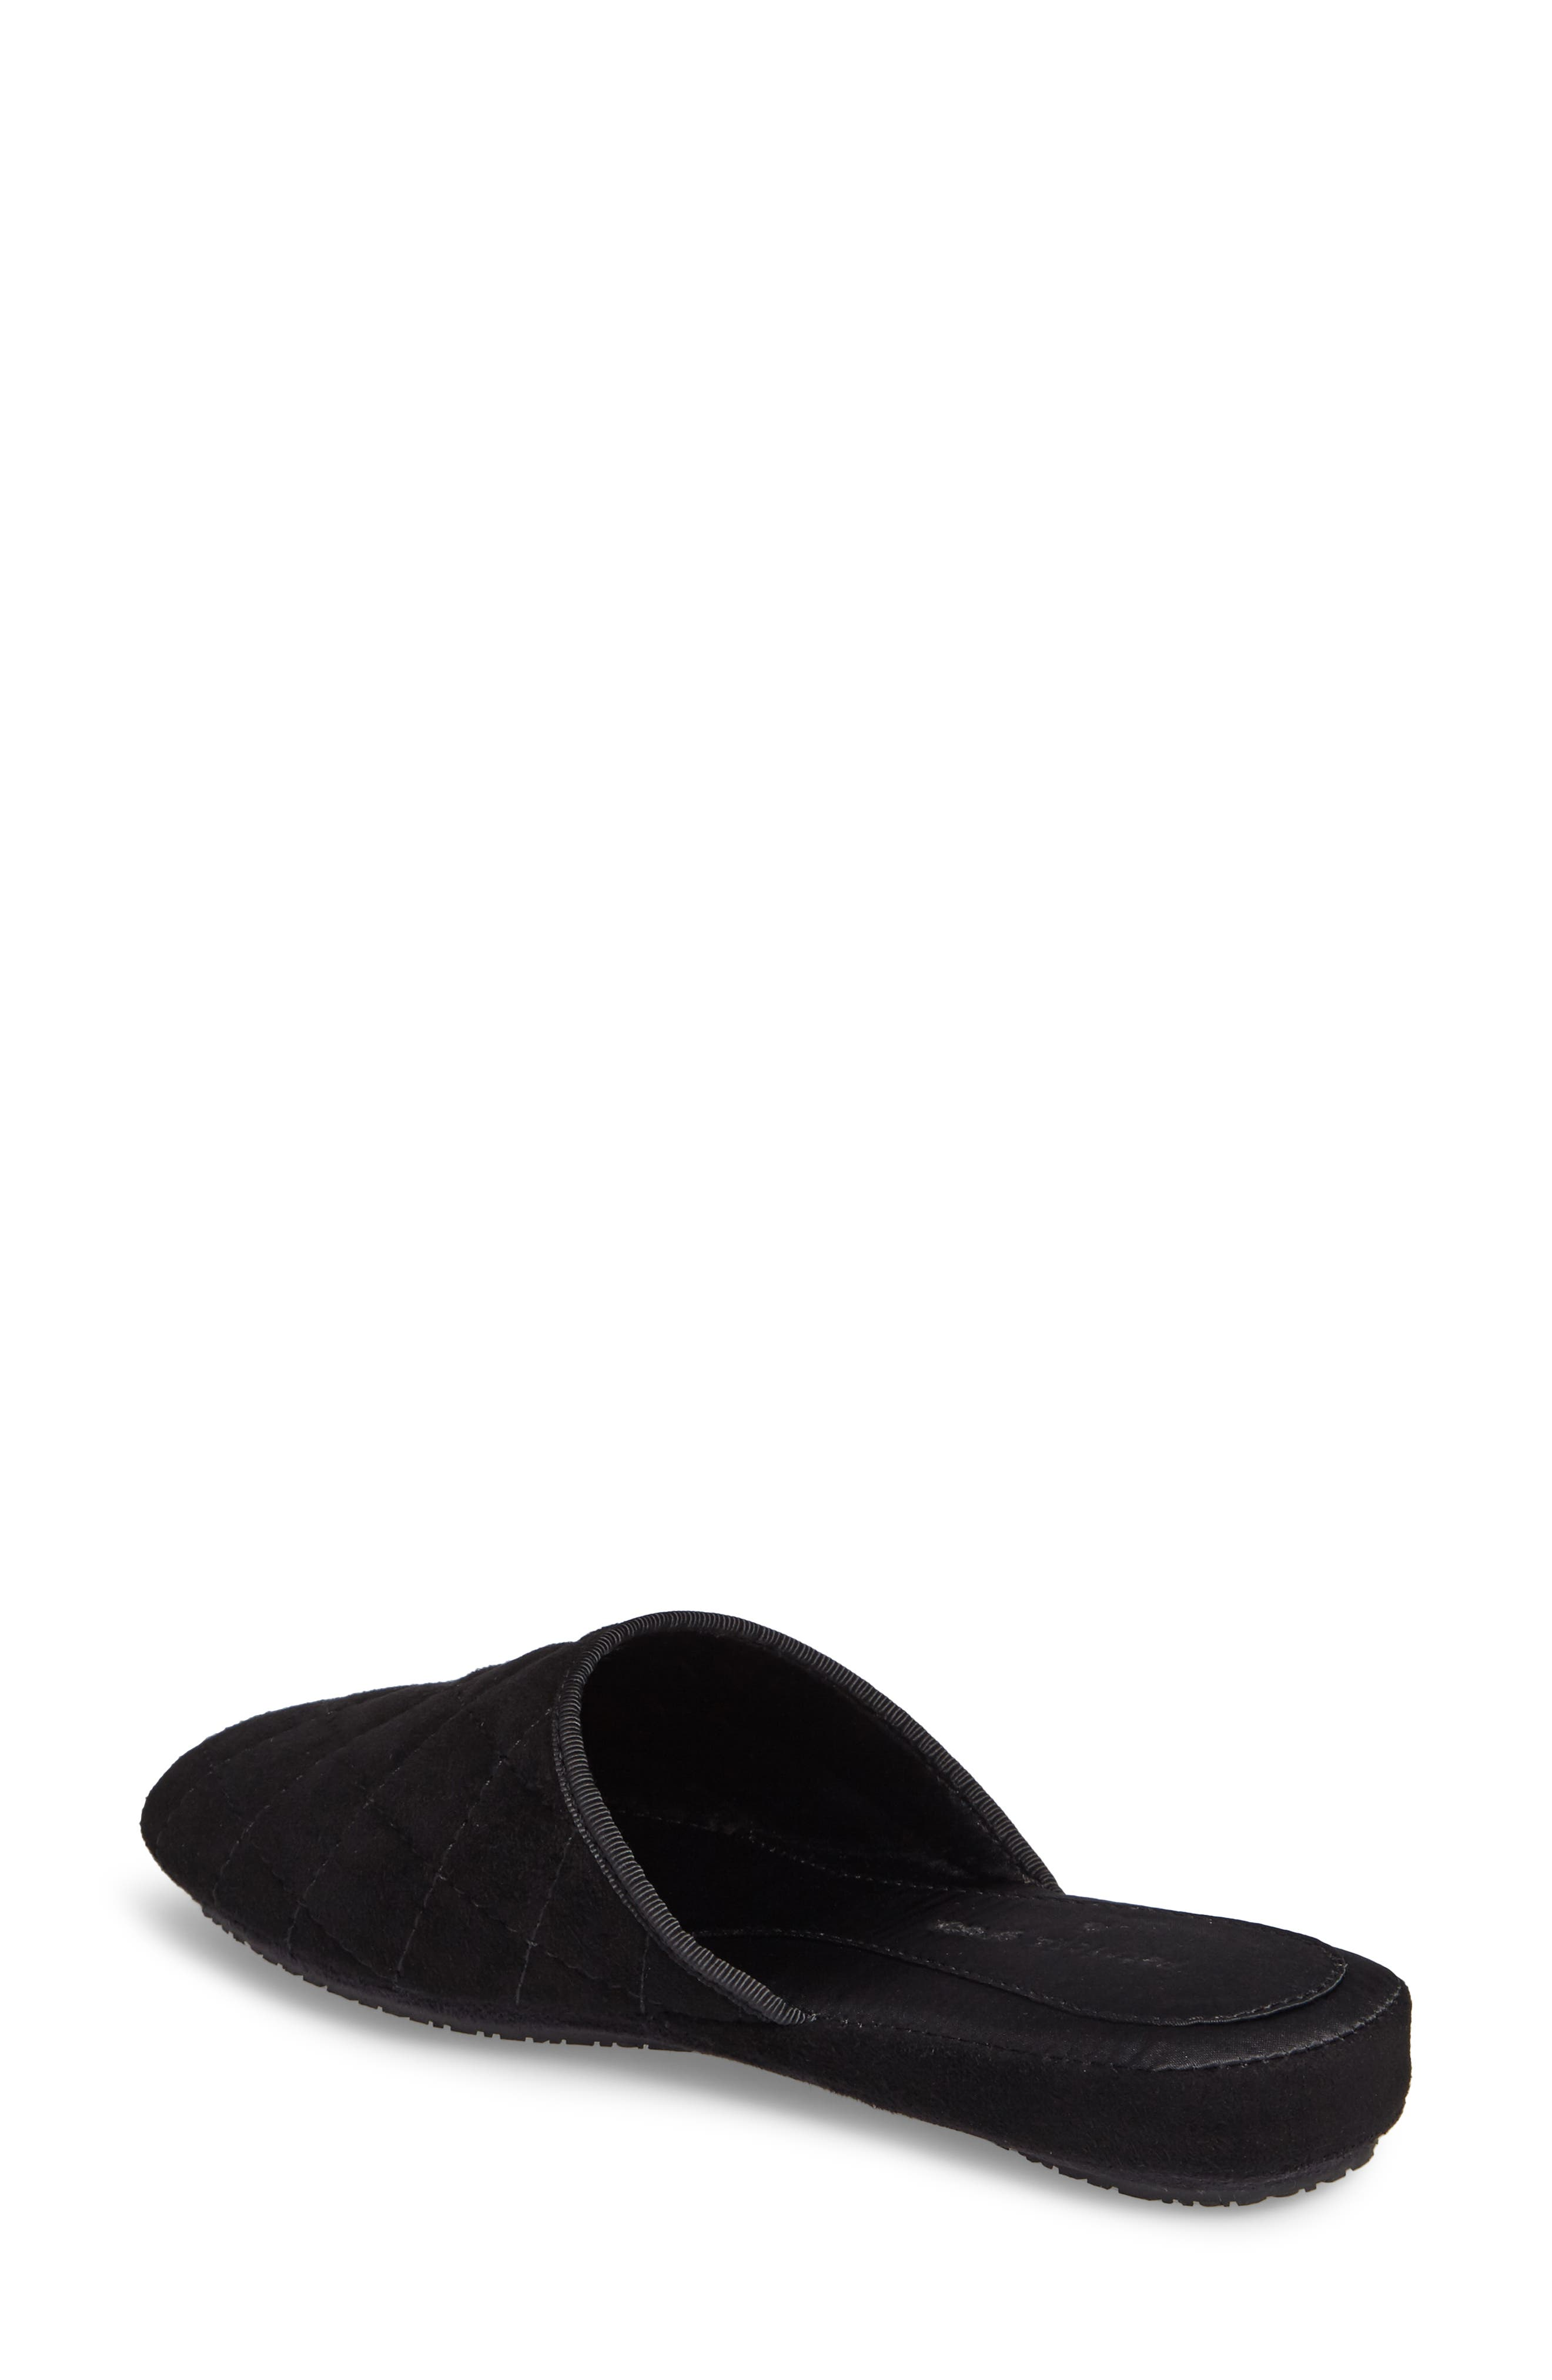 Coco Slipper,                             Alternate thumbnail 2, color,                             Black Suede